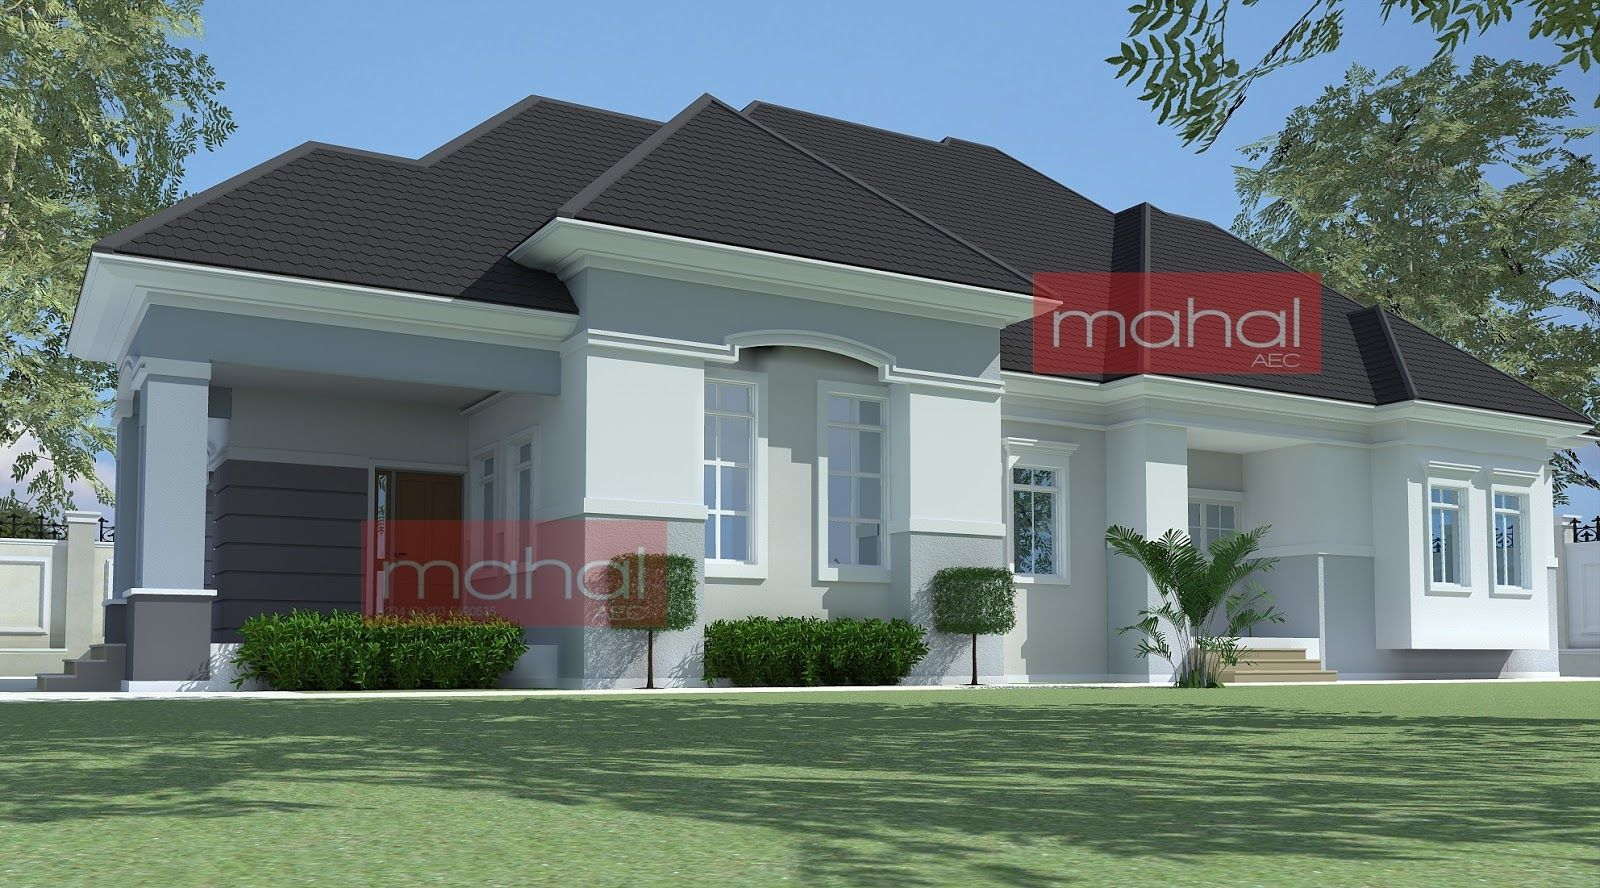 4 bedroom bungalow plan in nigeria 4 bedroom bungalow Modern bungalow house